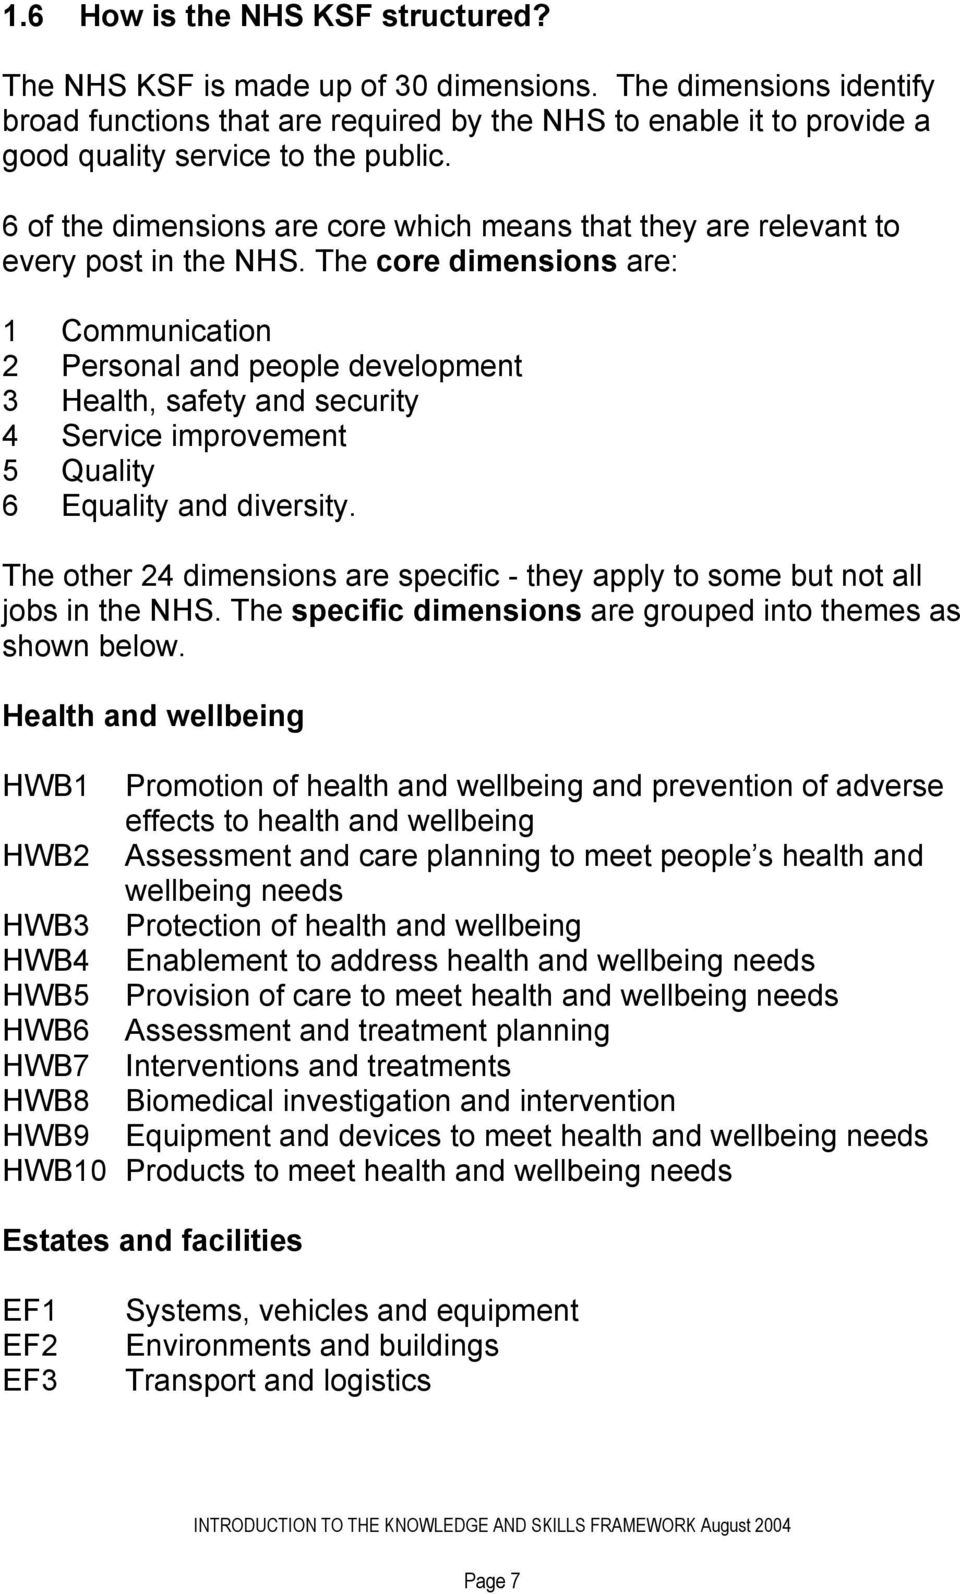 6 of the dimensions are core which means that they are relevant to every post in the NHS.